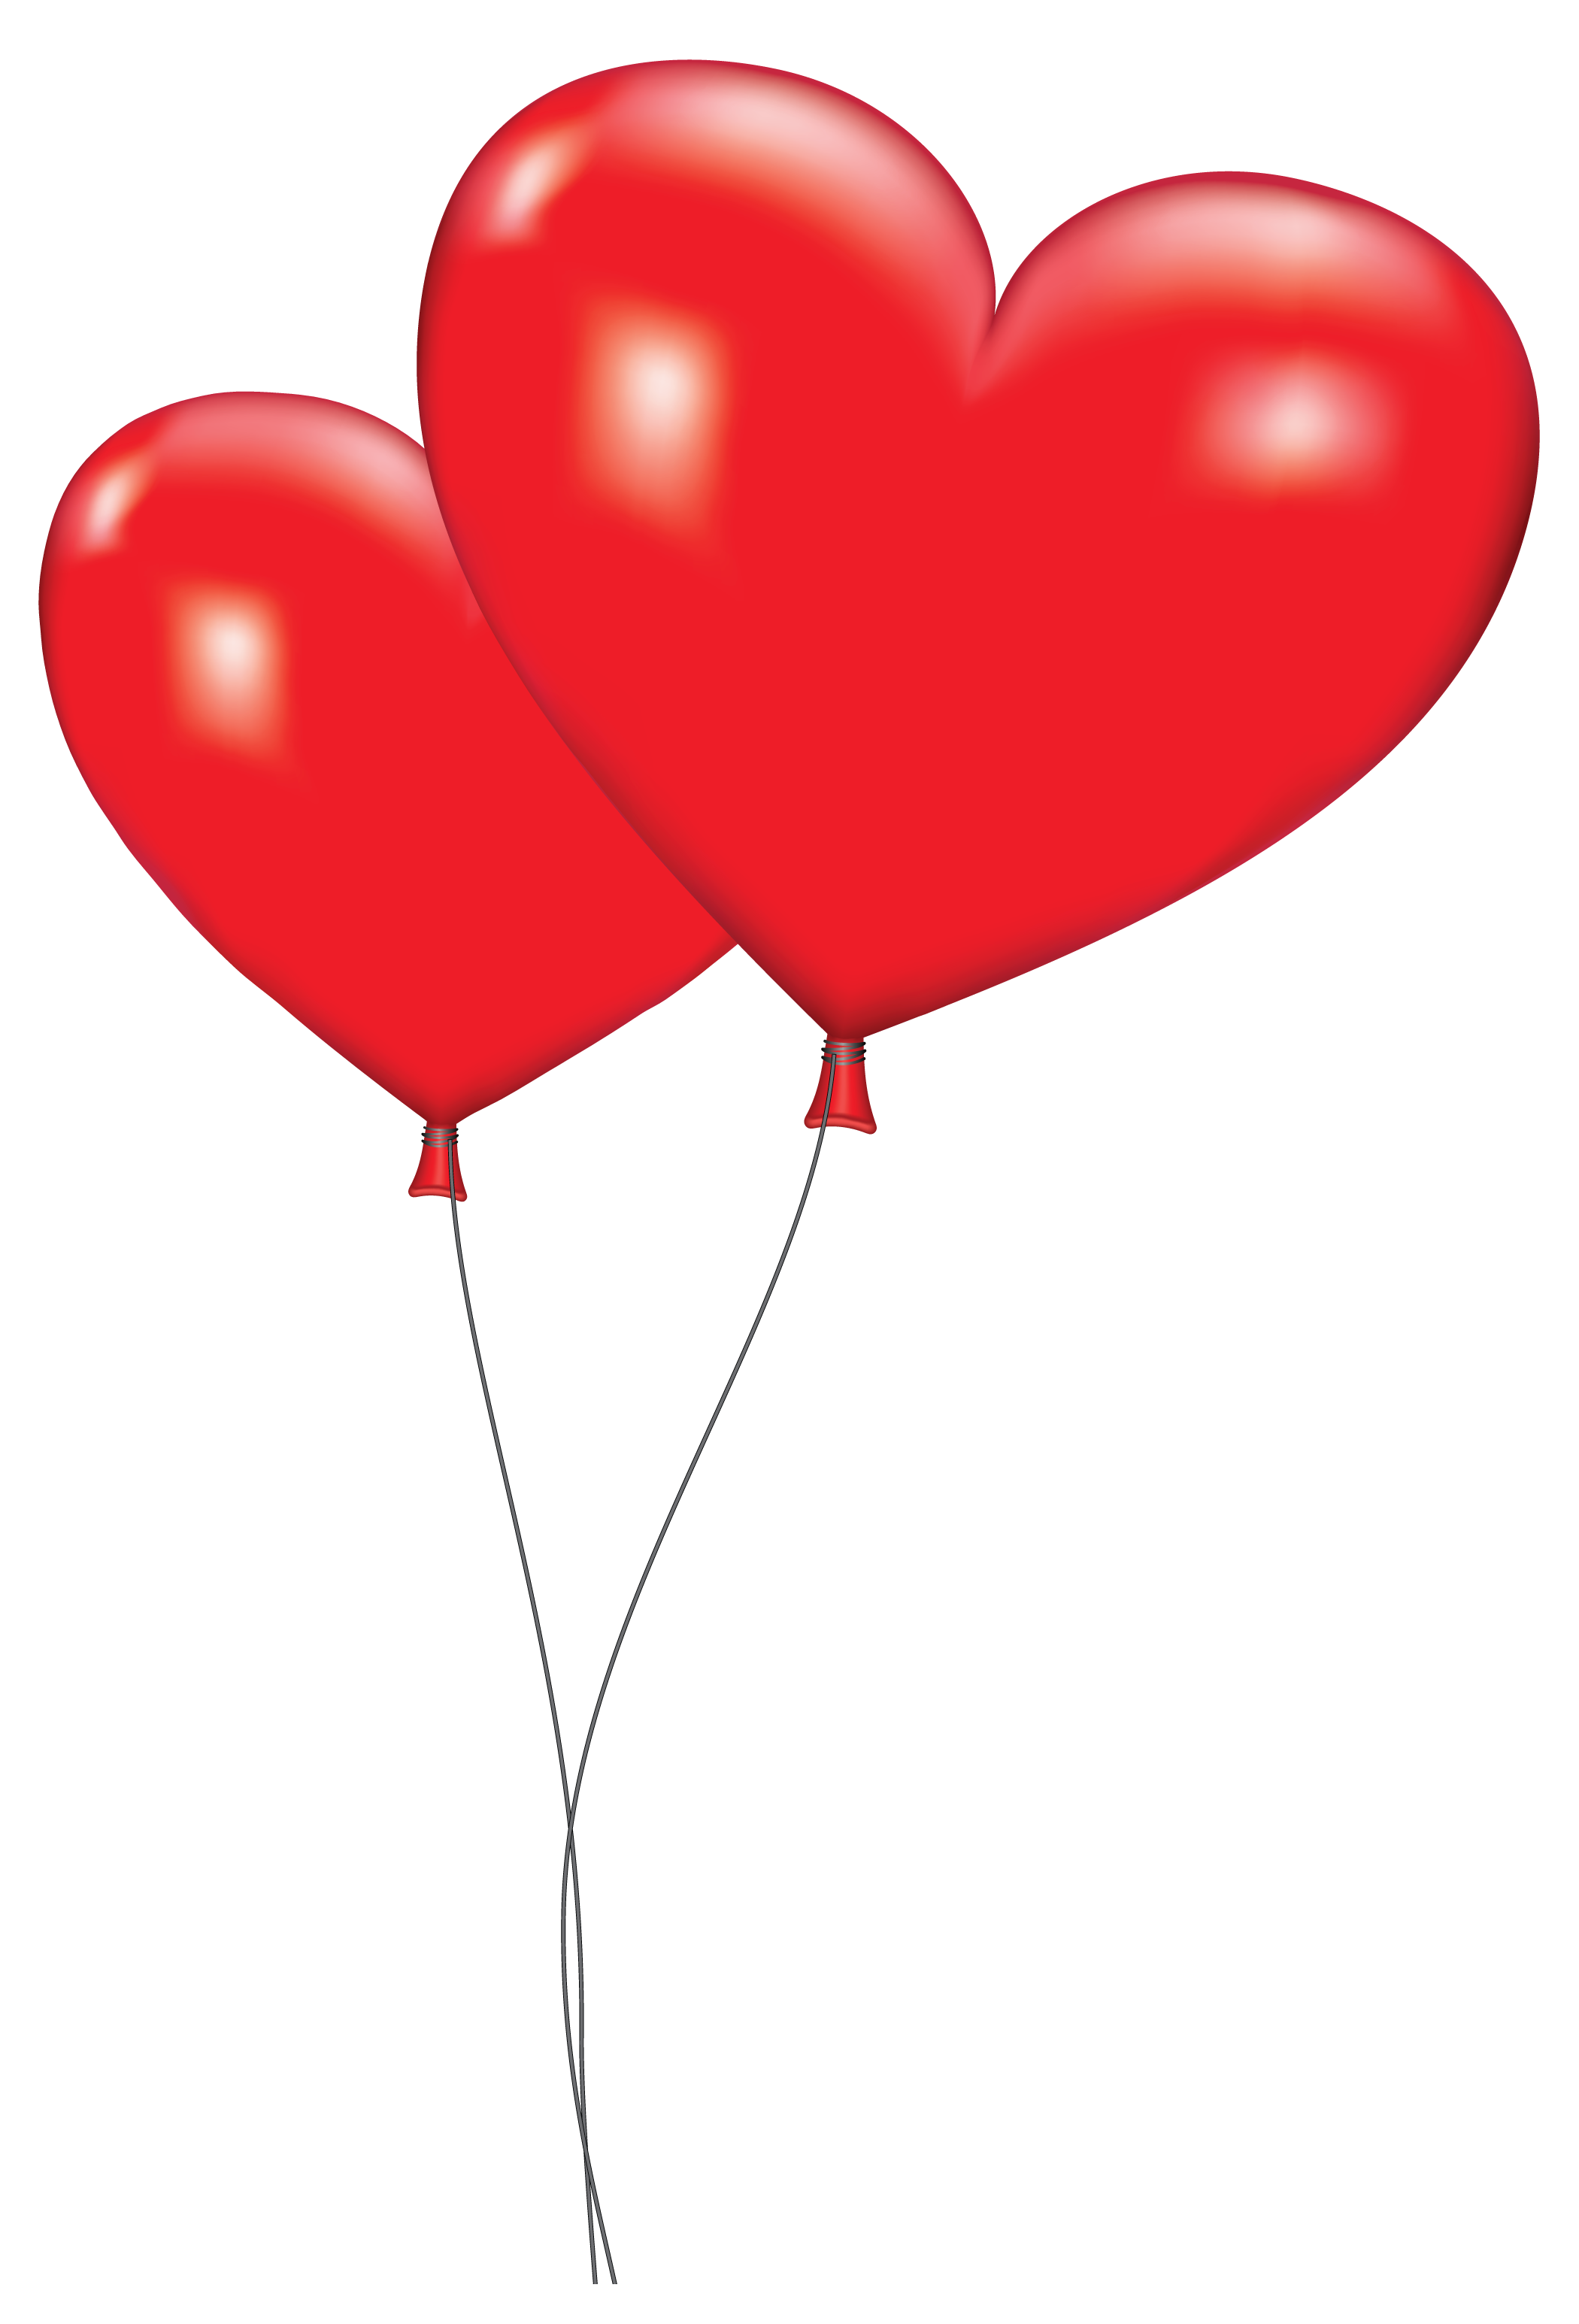 Large Red Heart Balloons Png Clipart Picture Heart Balloons Thanksgiving Clip Art Free Clip Art